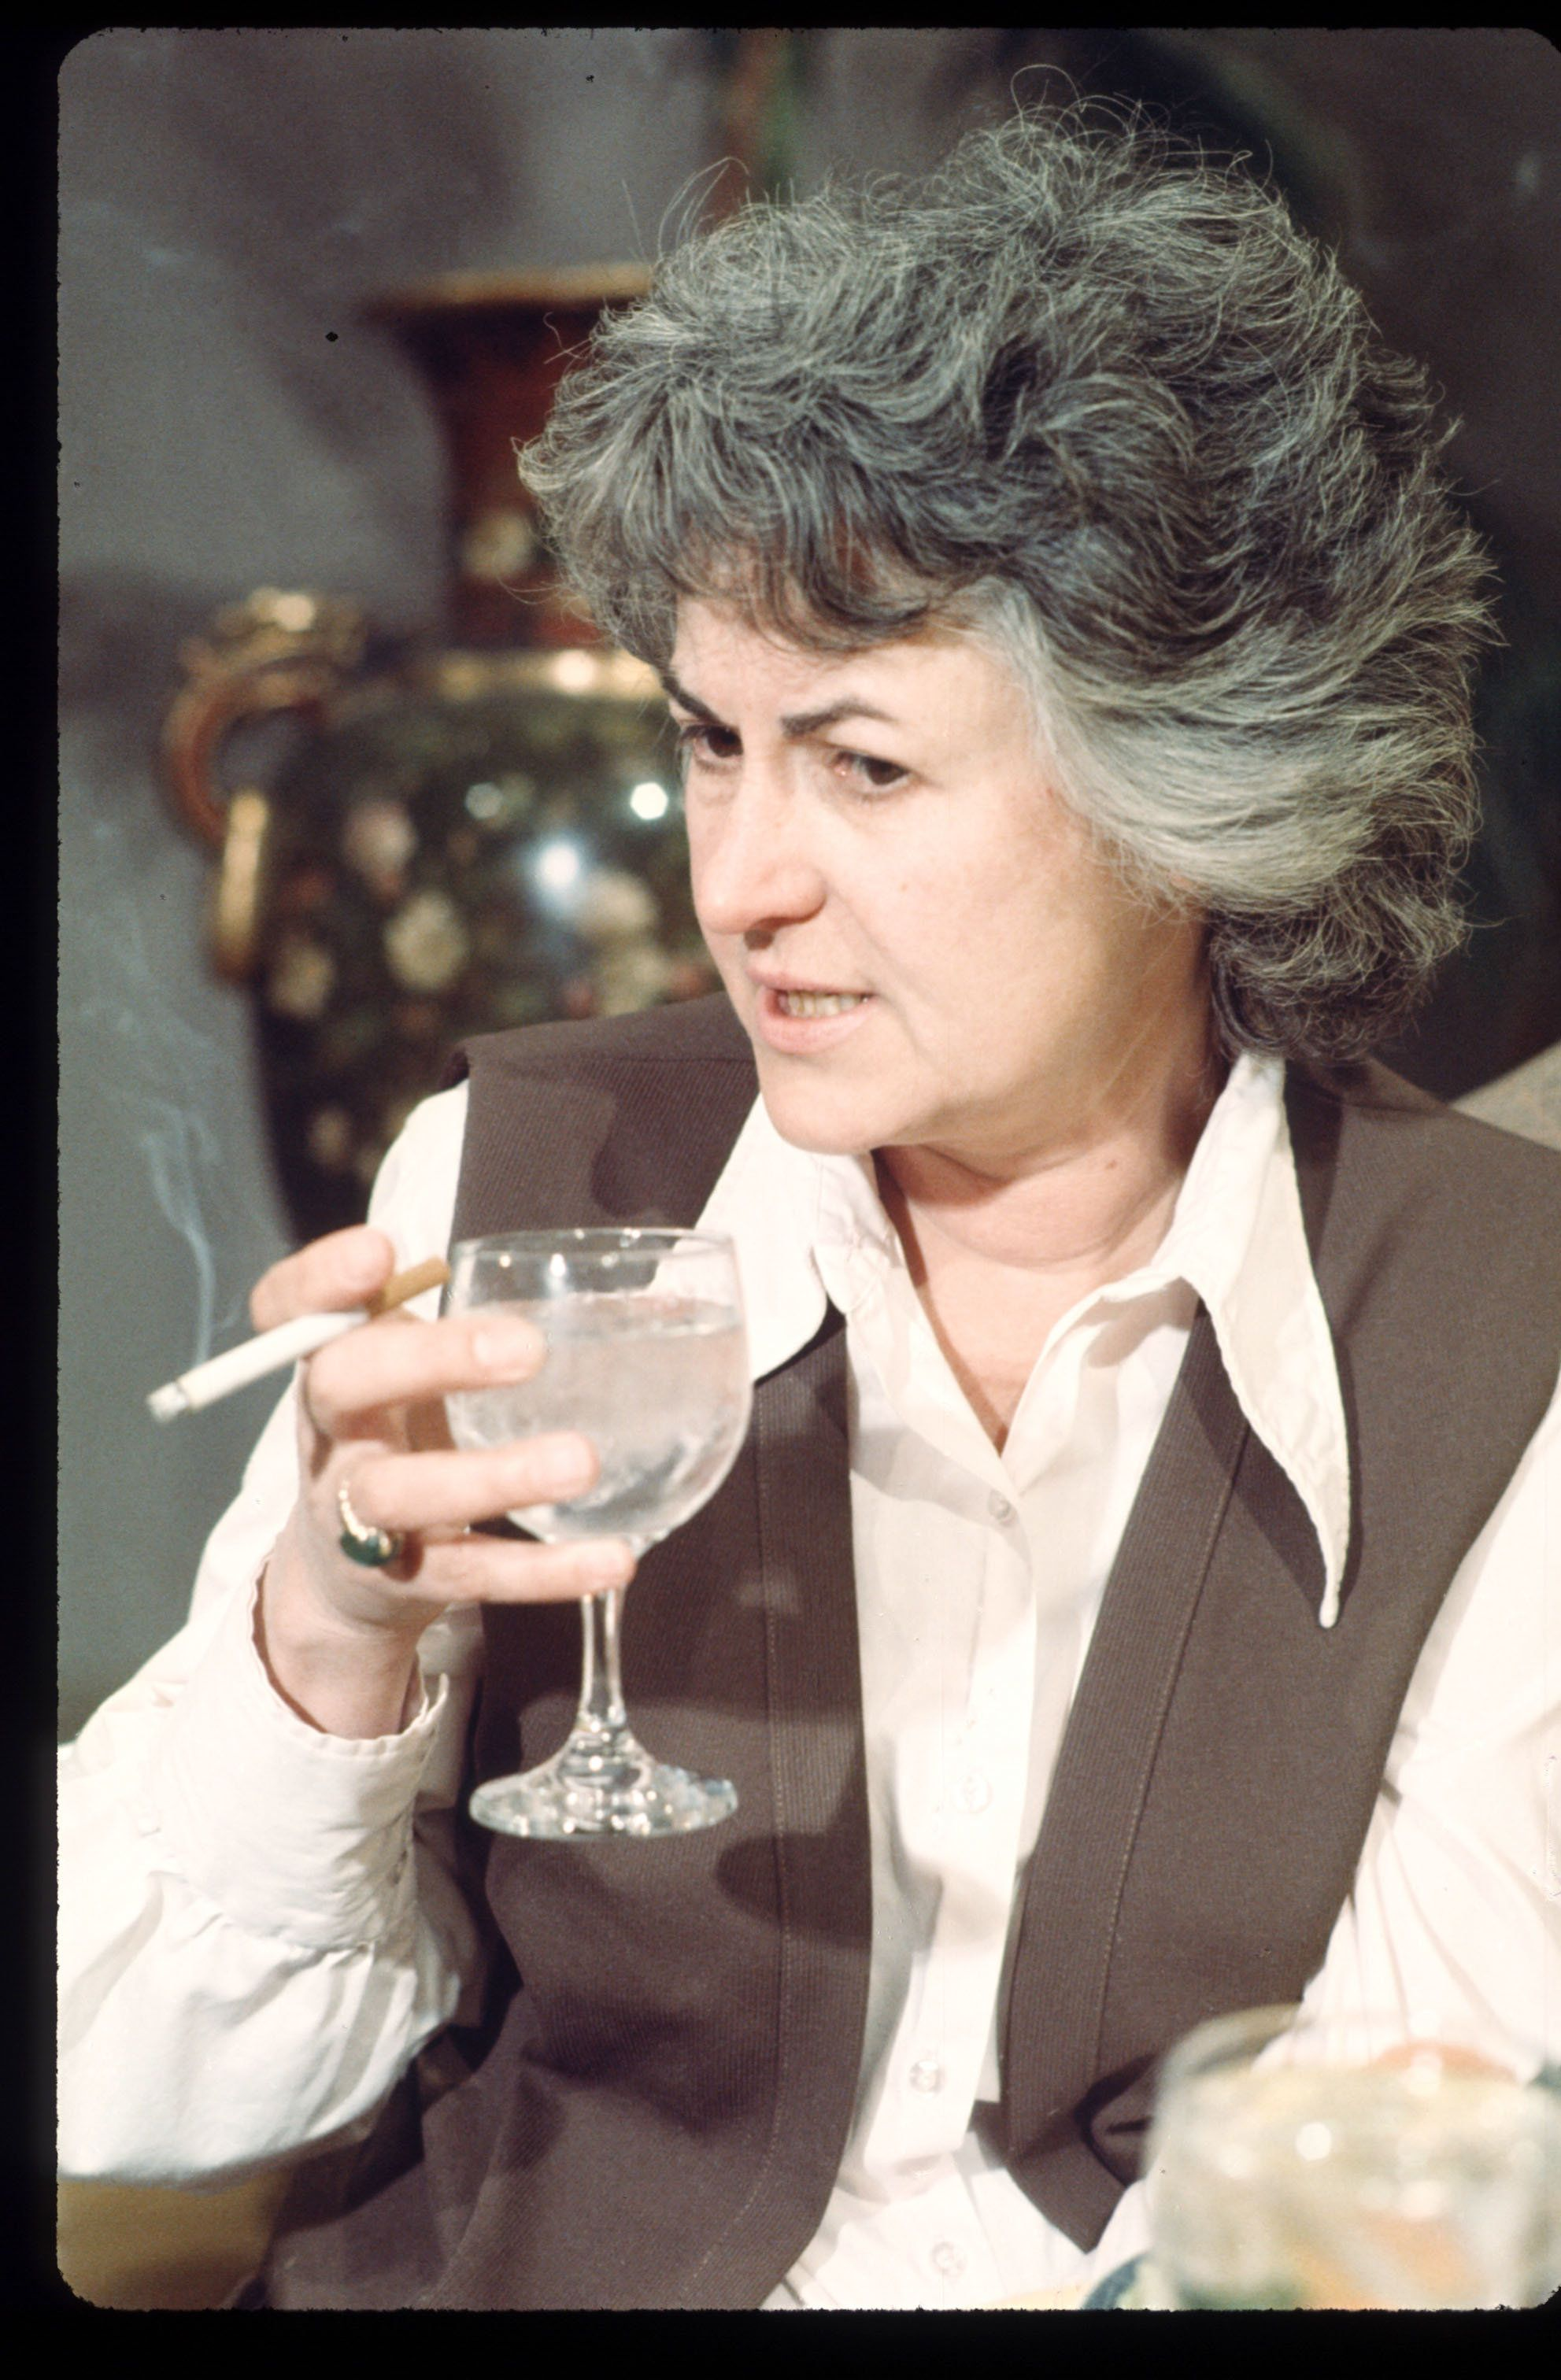 3738 02: Actress Beatrice Arthur holds a wine glass and a cigarette during a scene from the TV show 'Maude' June 1972 in Los Angeles, CA. Arthur guest starred on the show 'All in the Family' as Maude before starring in the spin-off 'Maude.' (Photo by Lee Cohen/Liaison)